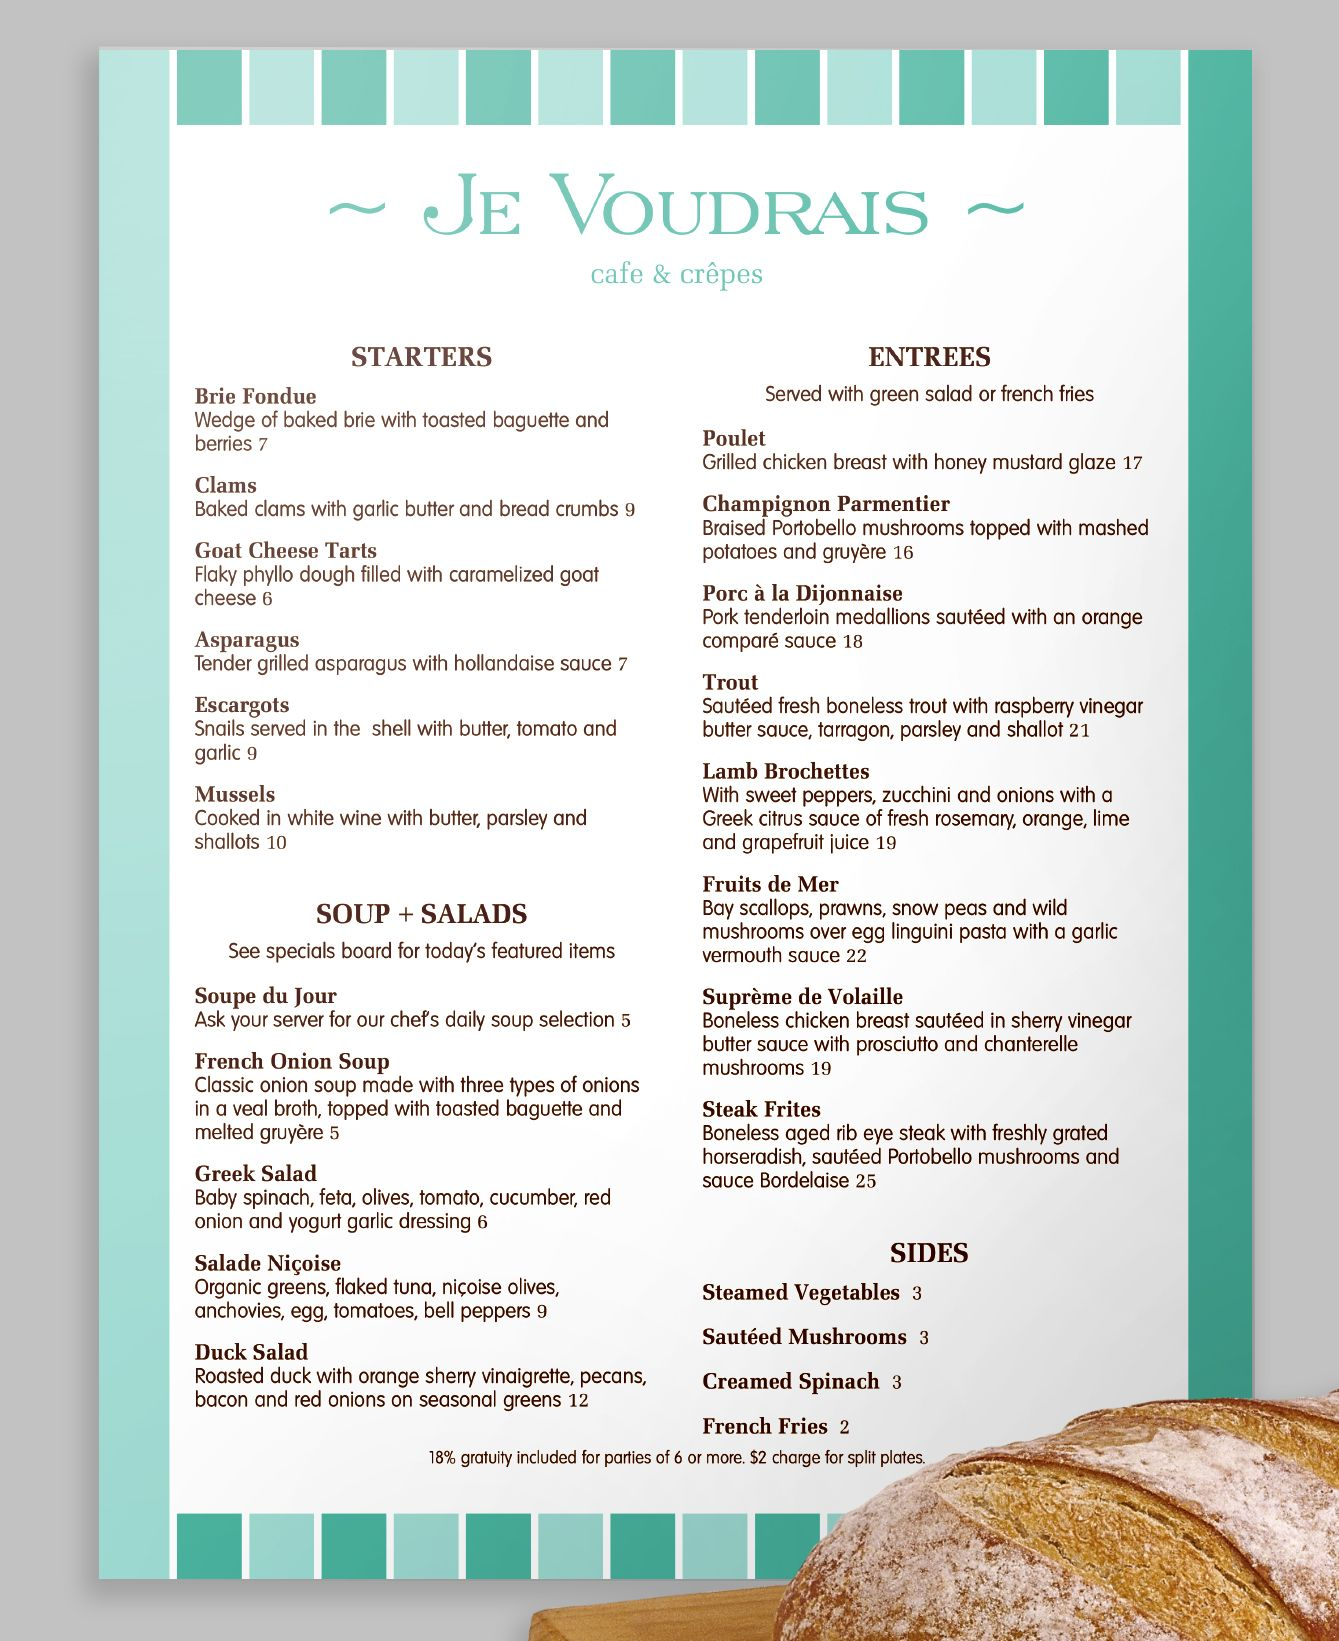 A Modern French Menu With A Stripe Design In Two Neat Shades Of